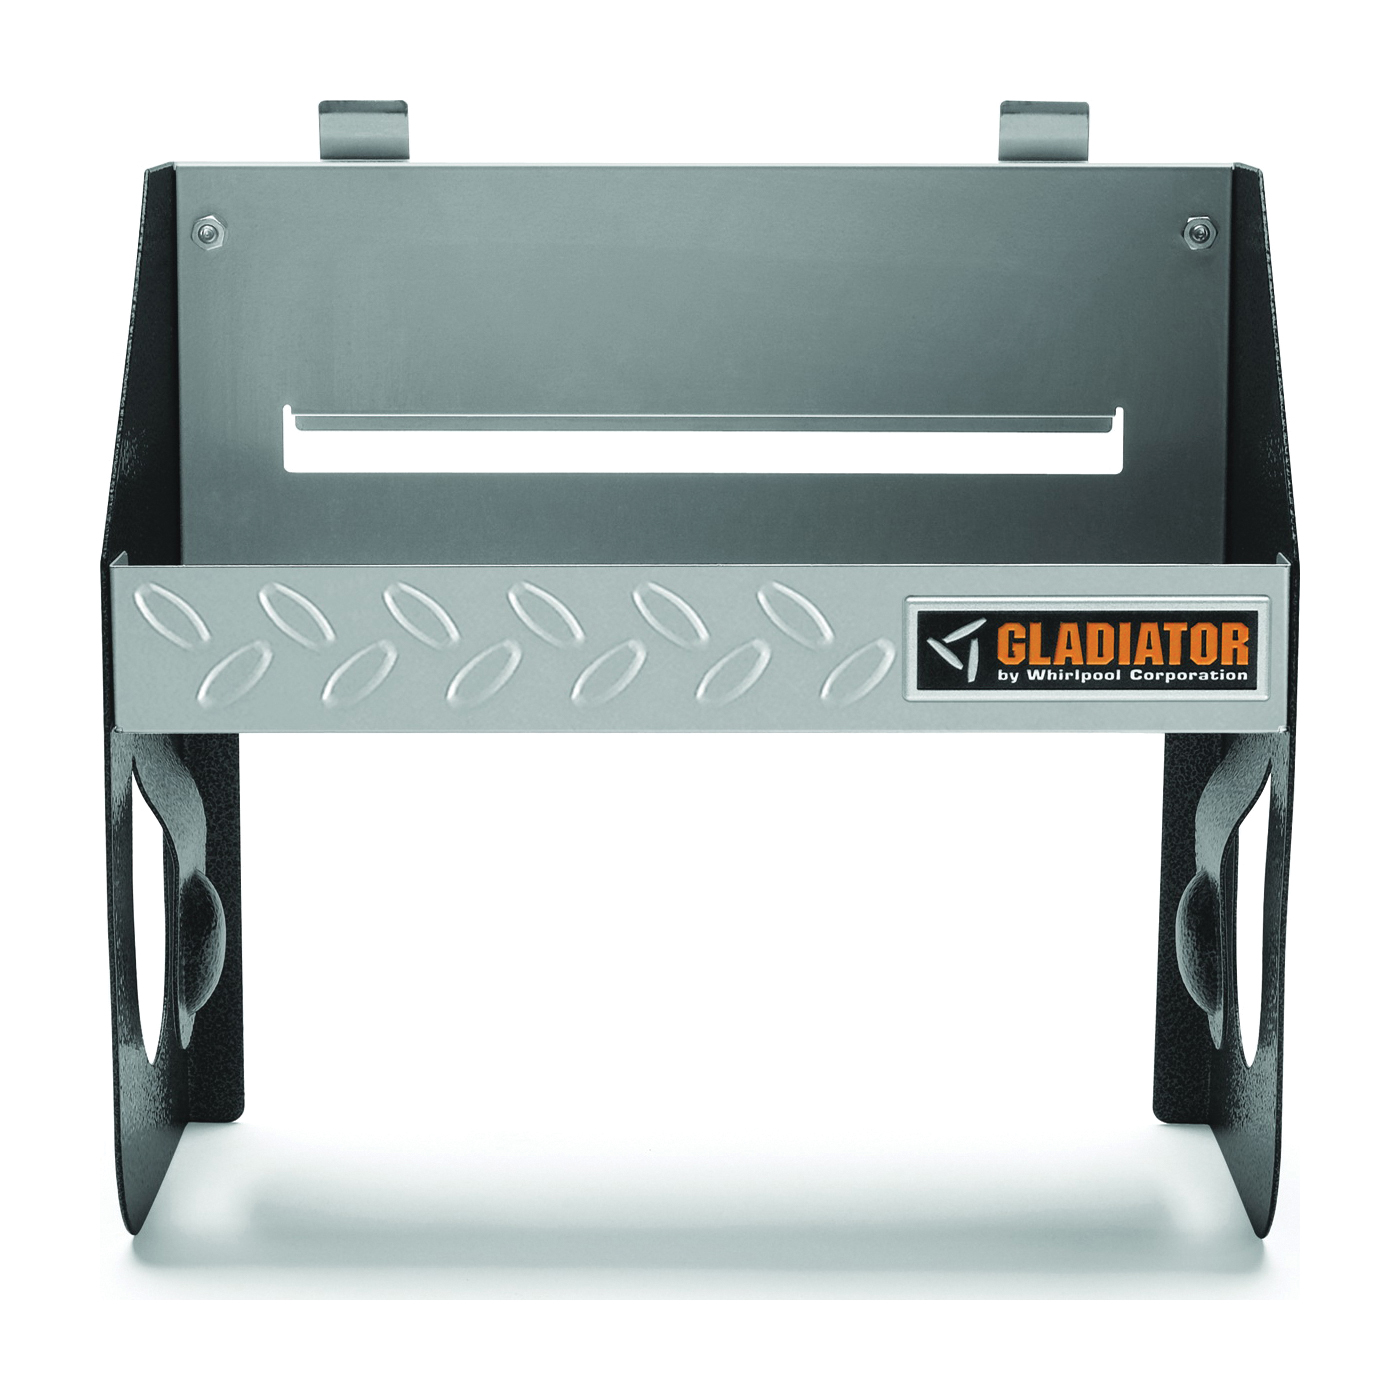 Picture of GLADIATOR GAWU12CCTG Clean Up Caddy, 25 lb Capacity, Metal, Granite, 12 in OAW, 12-3/8 in OAH, 6 in OAD